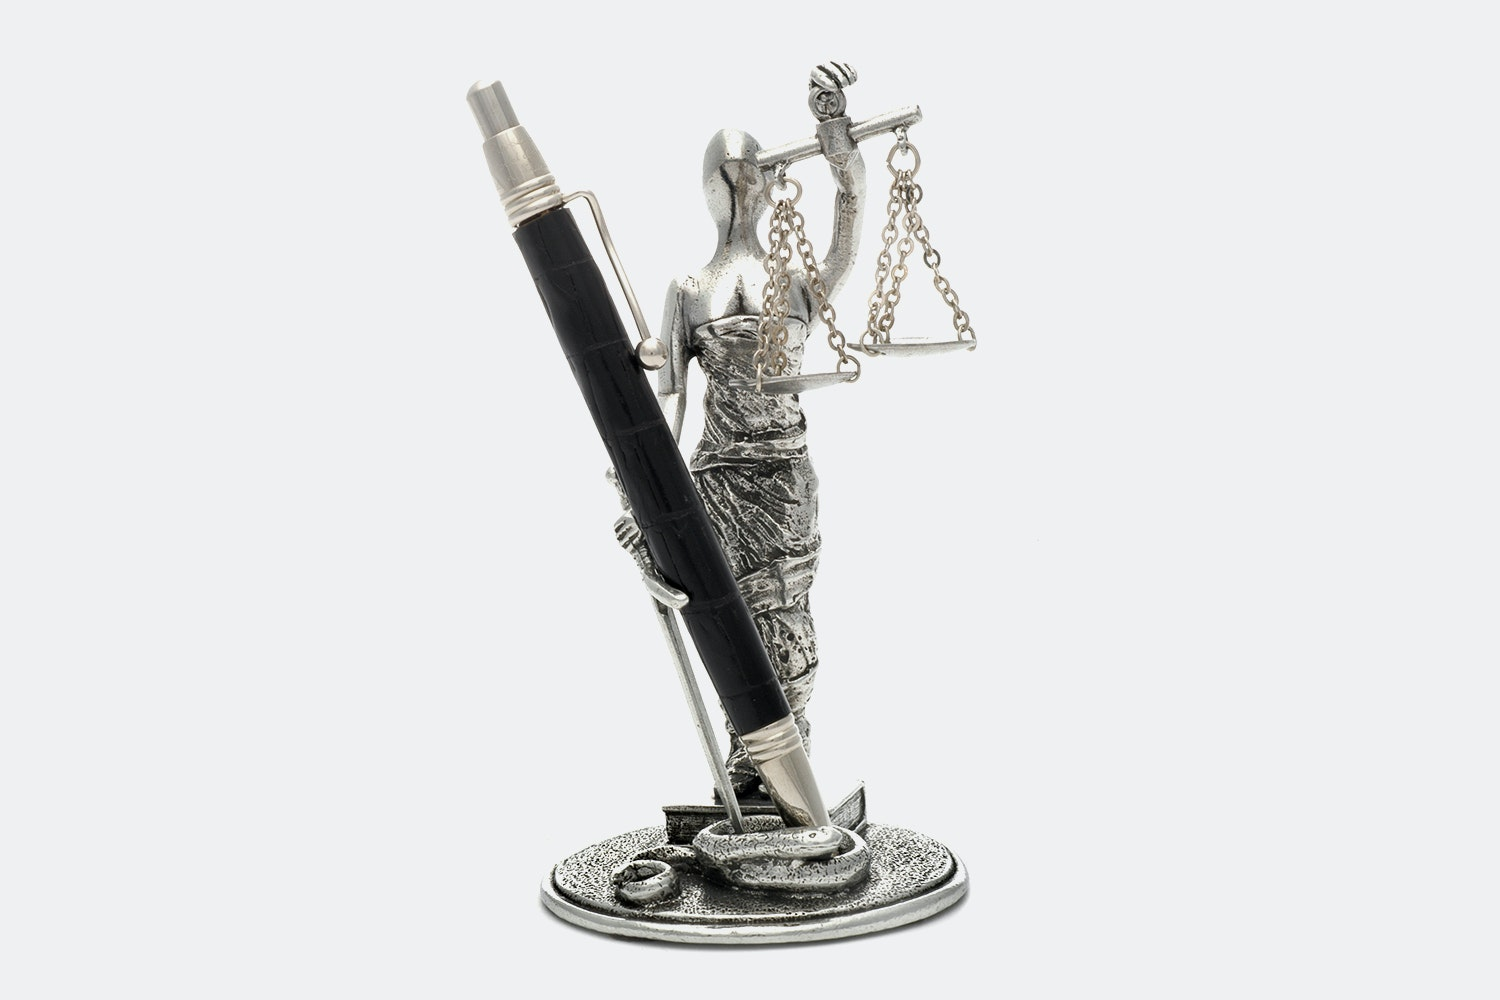 Scales of Justice (+ $40)